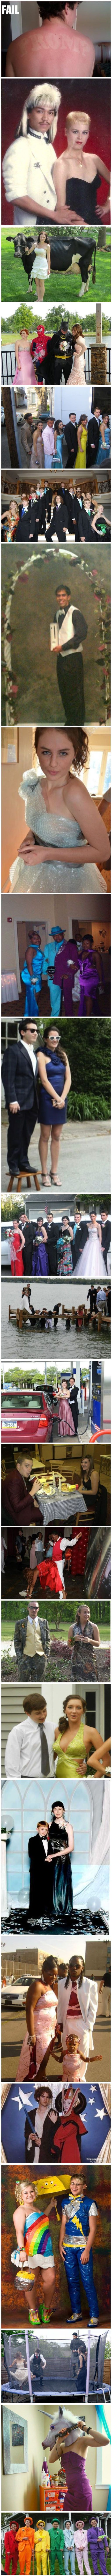 Lolololololol. And I thought my prom experience was weird.